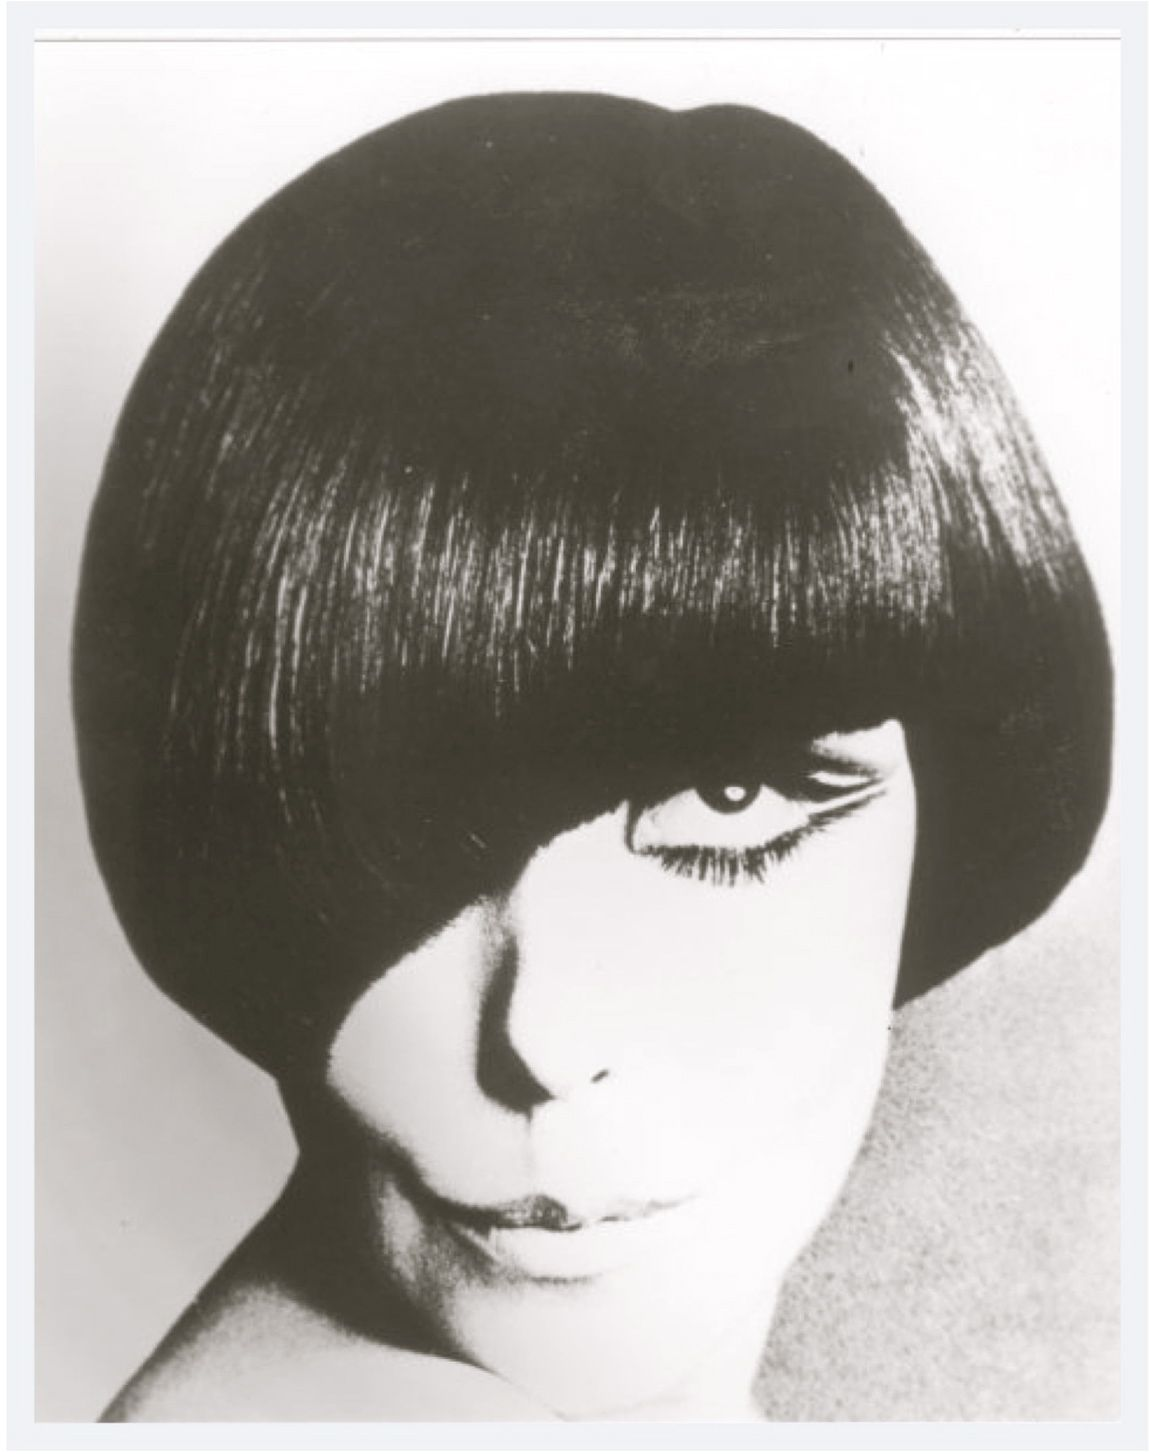 1960S Hairstyles Glamorous Vidal Sassoon Created This Hairstyle In The 1960S And Was Part Of